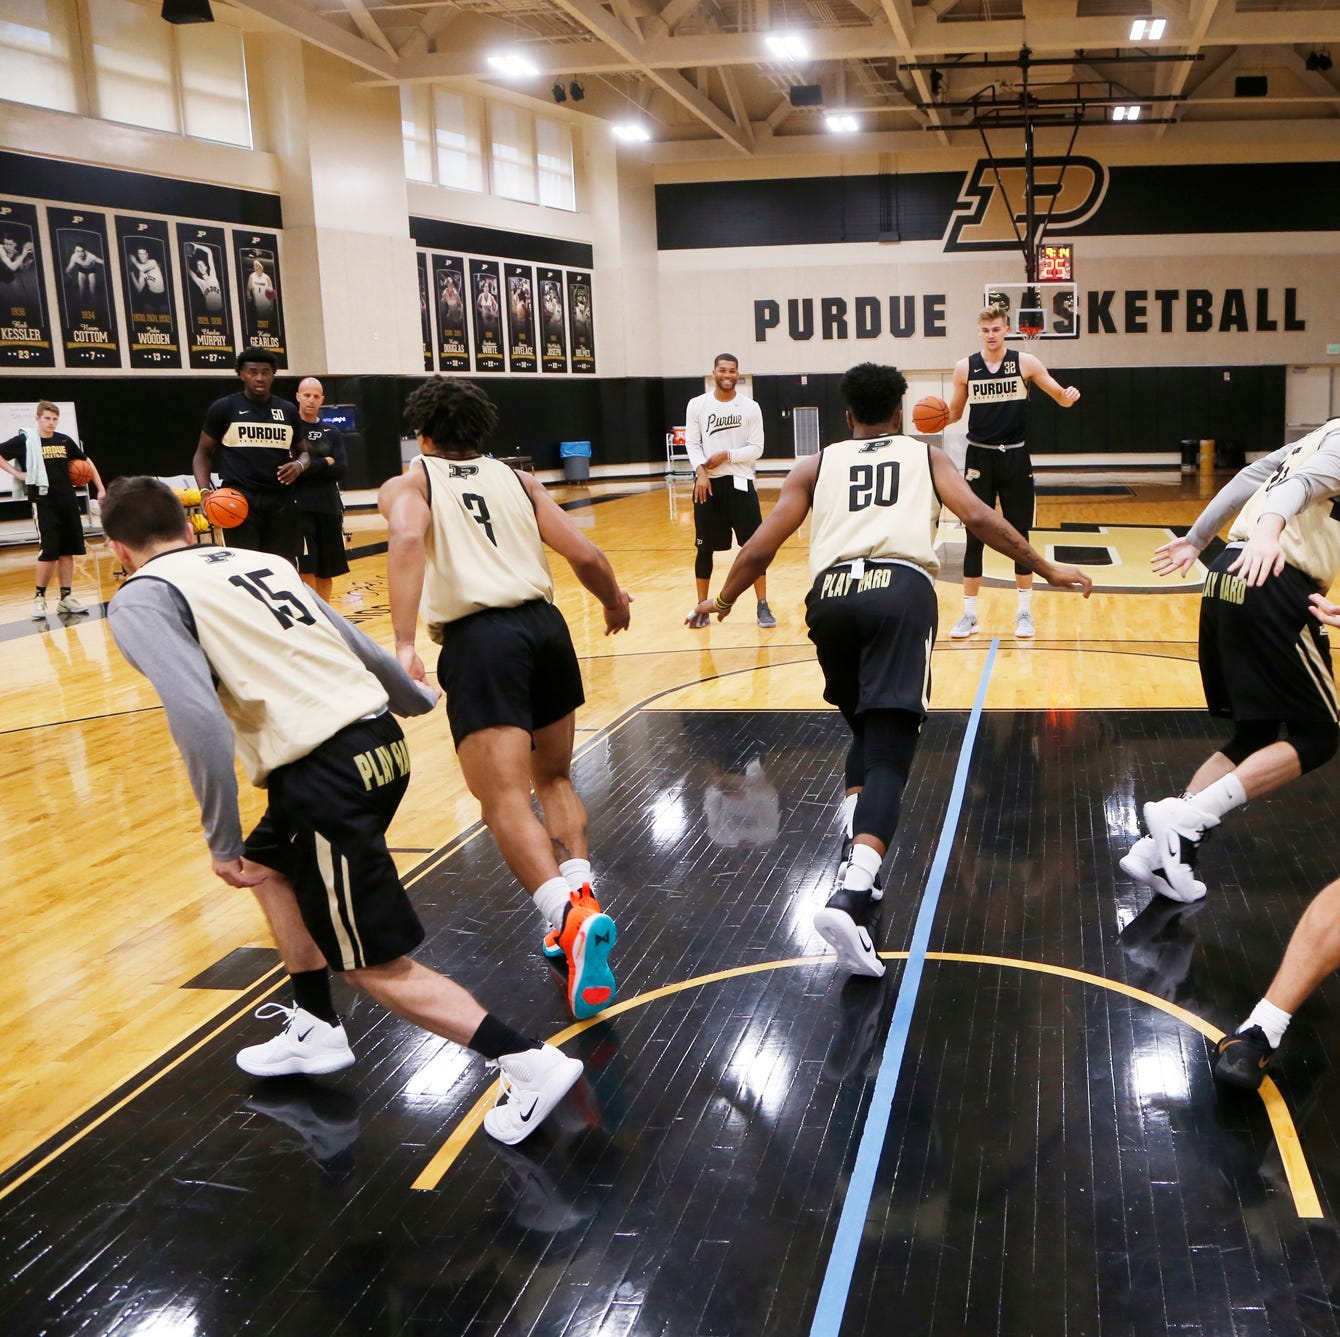 Purdue basketball first practice of 2018-19 | News and notes